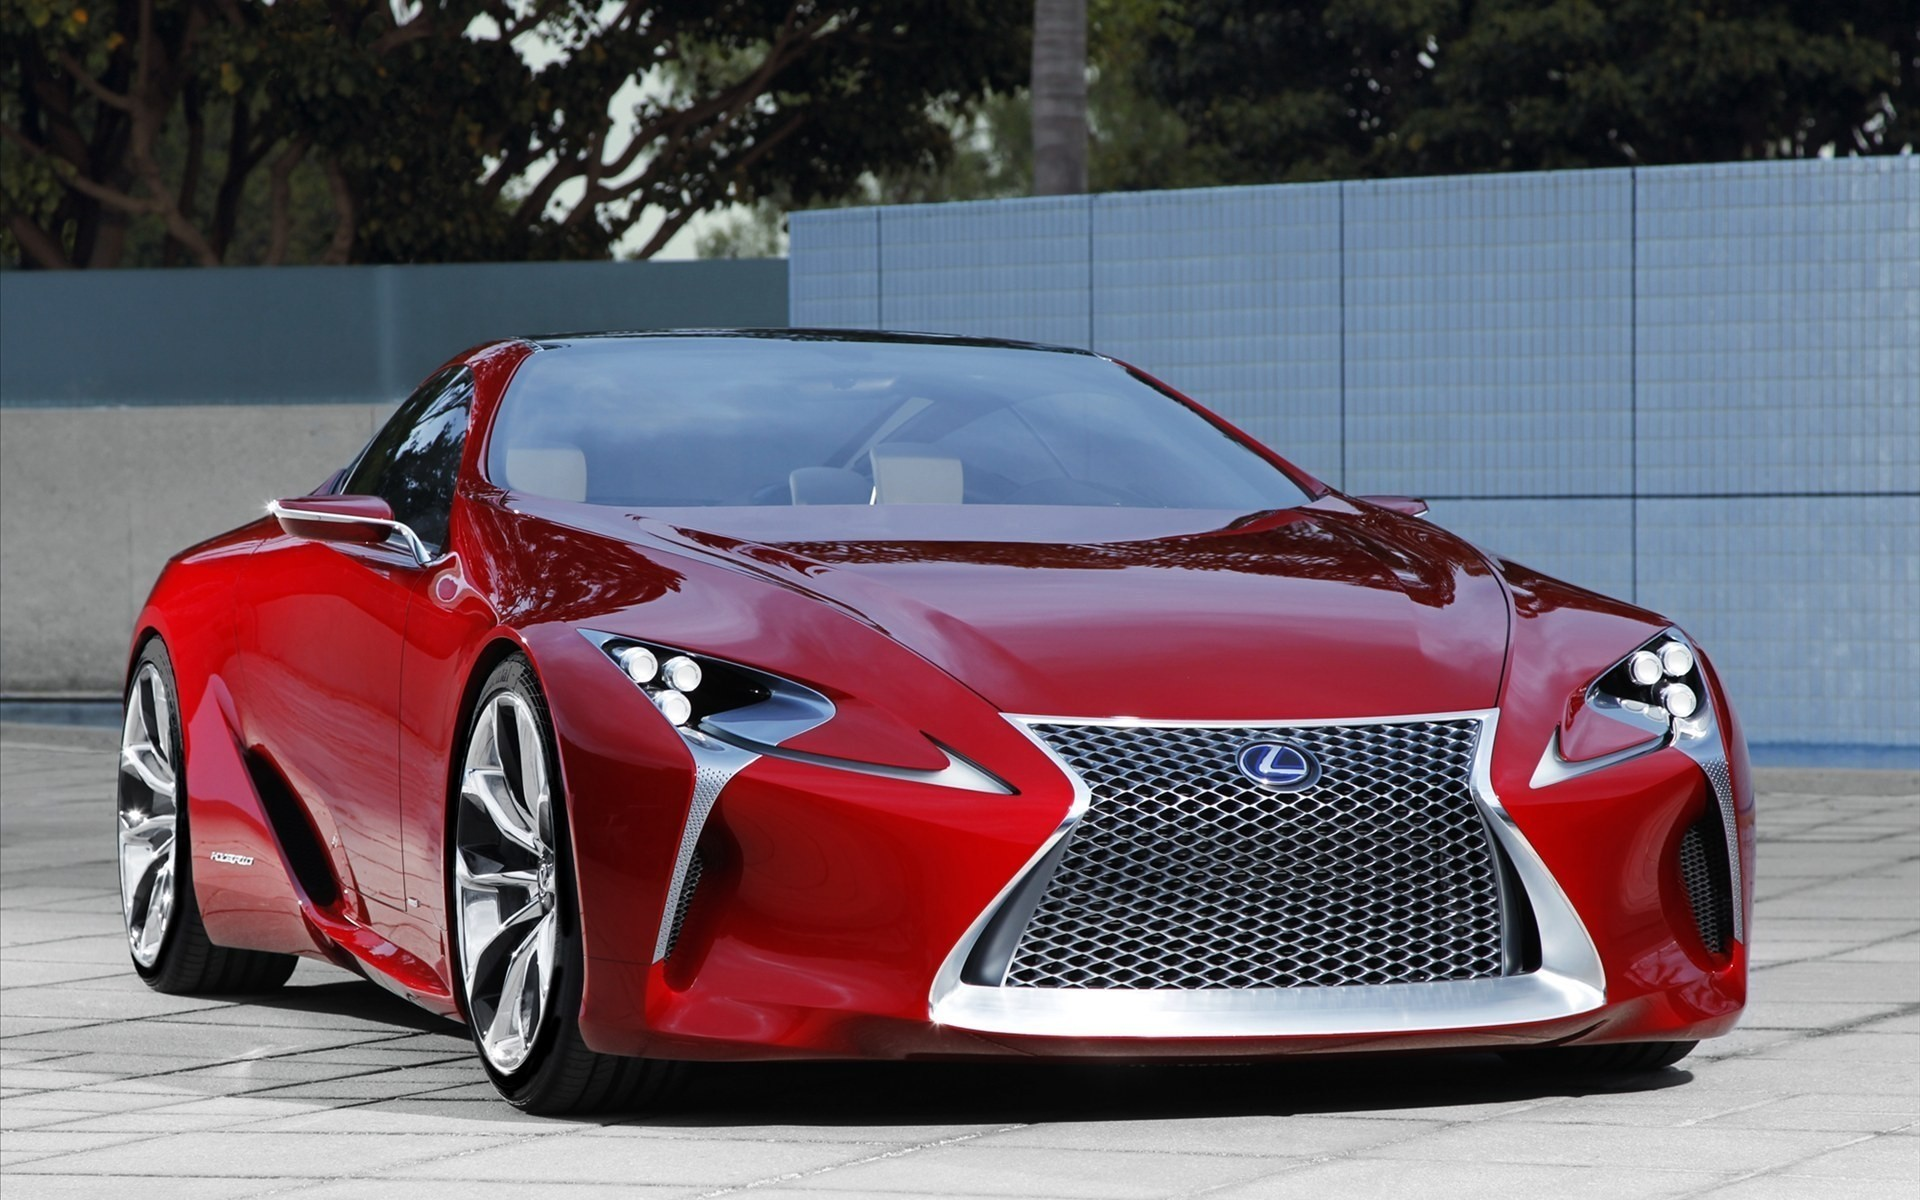 lexus car vehicle drive transportation system fast wheel race automotive hurry power prestige coupe show hood lexus concept lexus lf lc